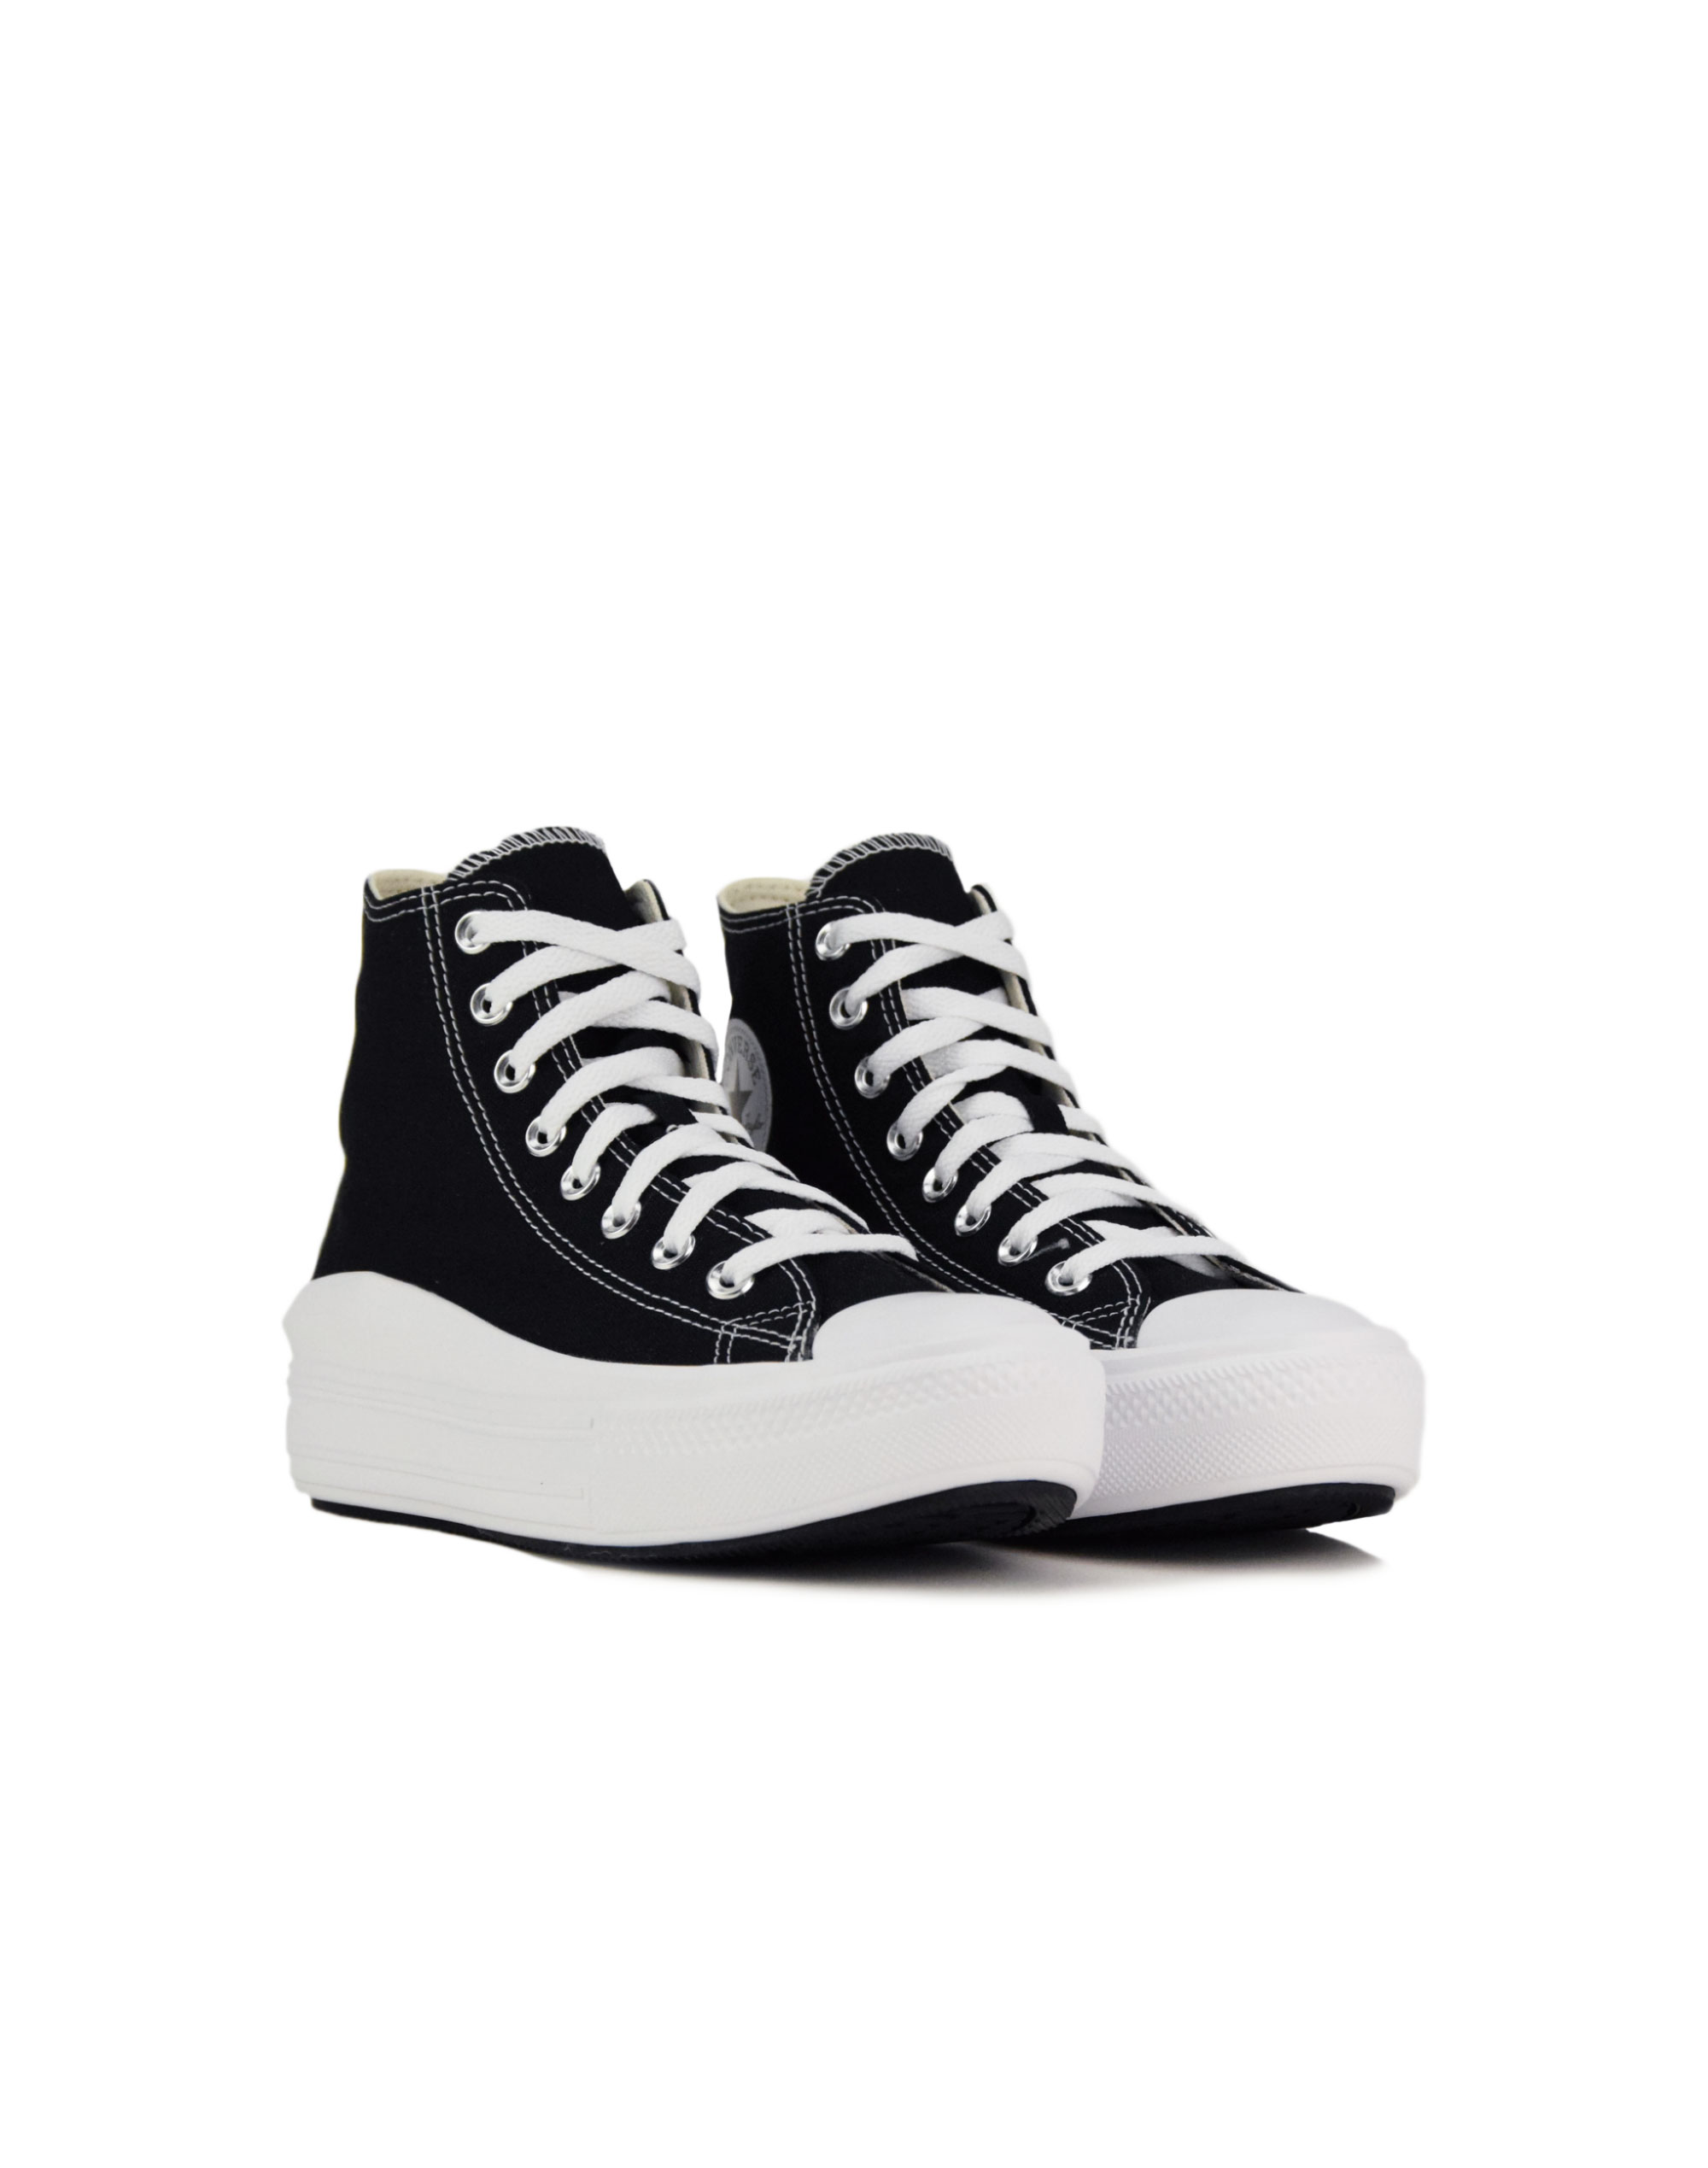 Converse Chuck Taylor All Star Move Hi Top (568497C) Black/Natural Ivory/White